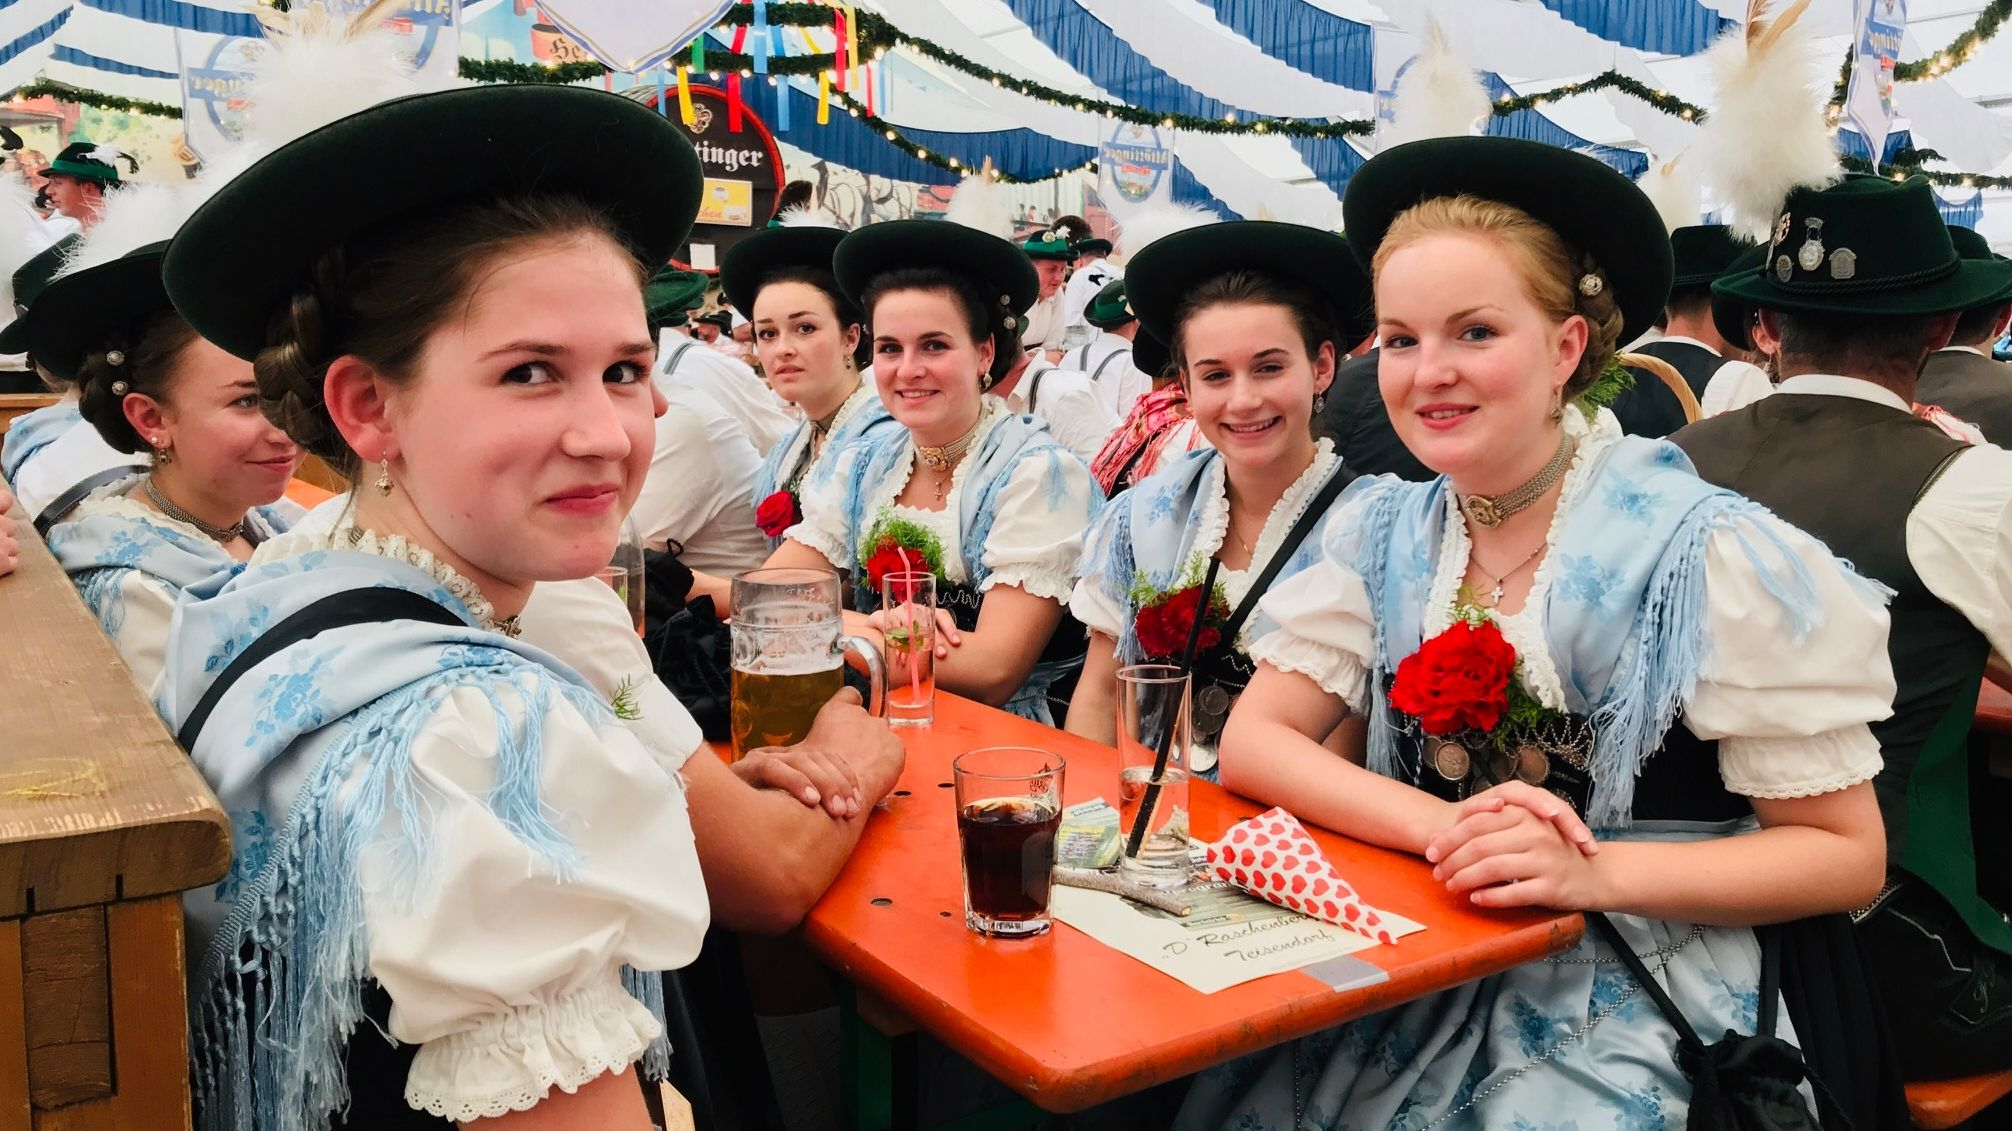 Bayerns größtes Gautrachtenfest in Altötting.